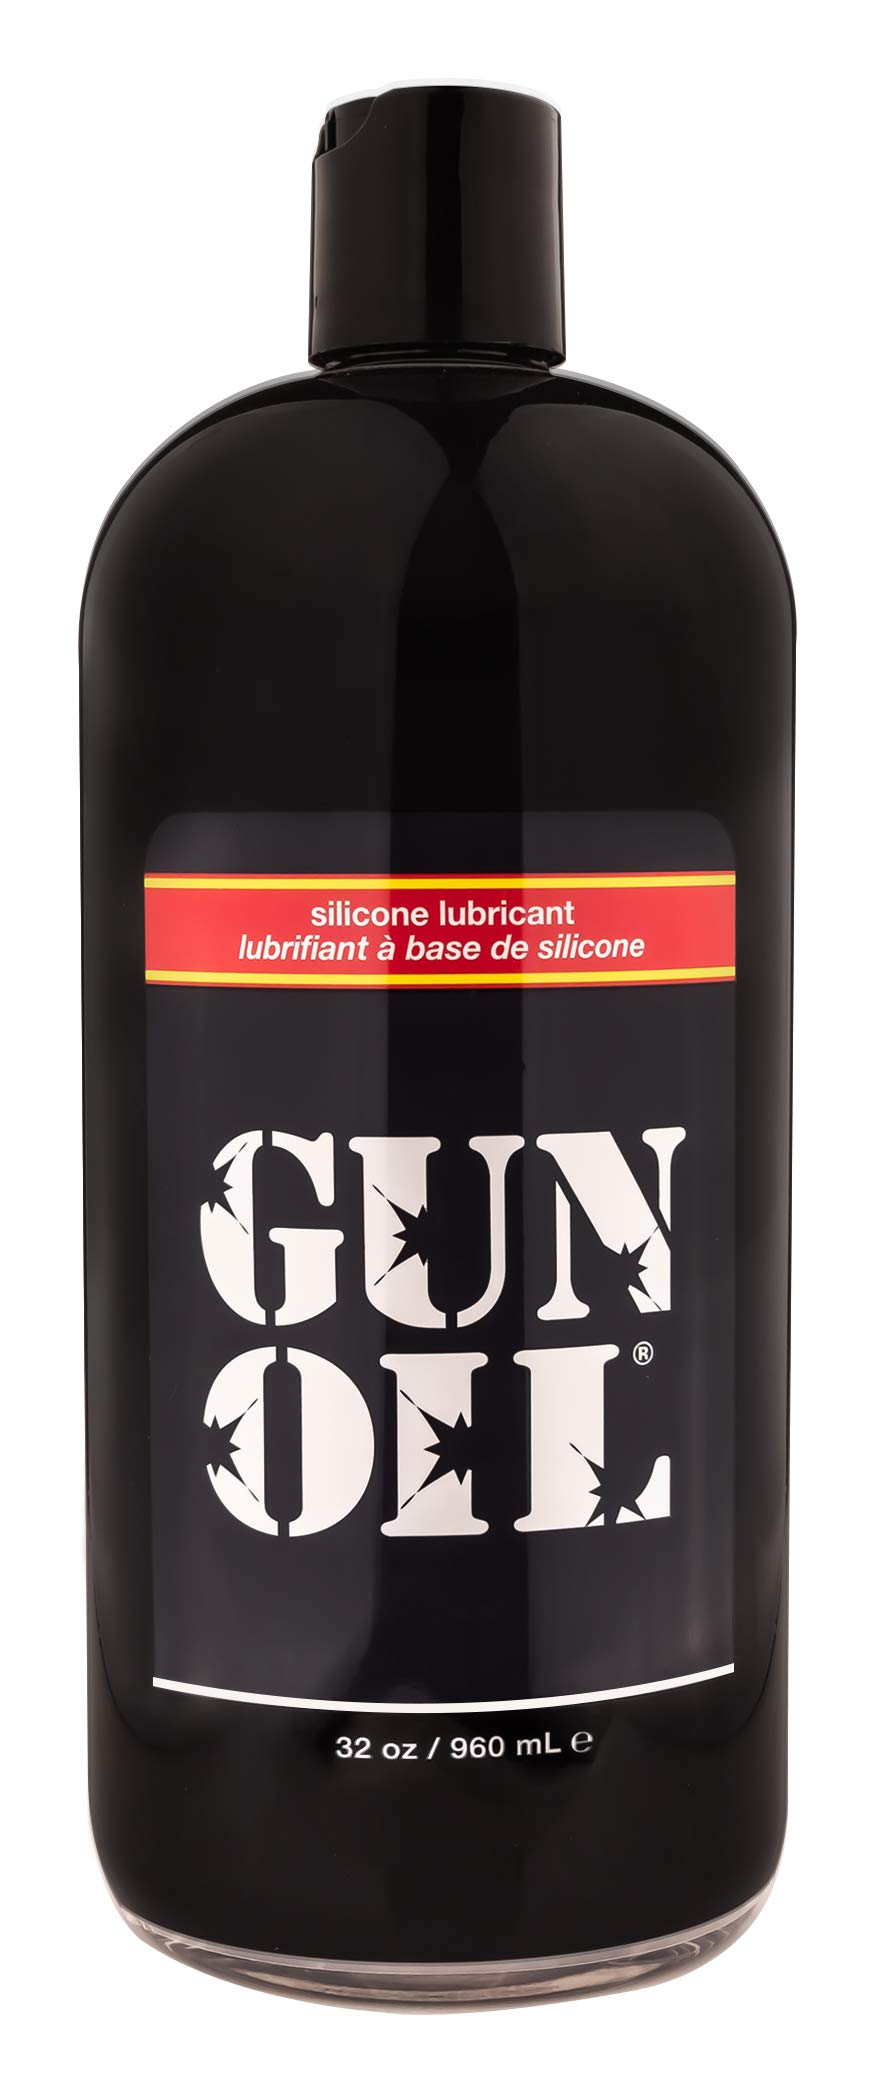 GUN OIL Silicone Lubricant - Hypoallergenic Silicone-Based Lubricant Enriched With Aloe Vera & Vitamin E For Maximum Comfort And Long-Lasting Lubrication ( 32 Fluid Ounce - 1000 Milliliter ) by Gun Oil